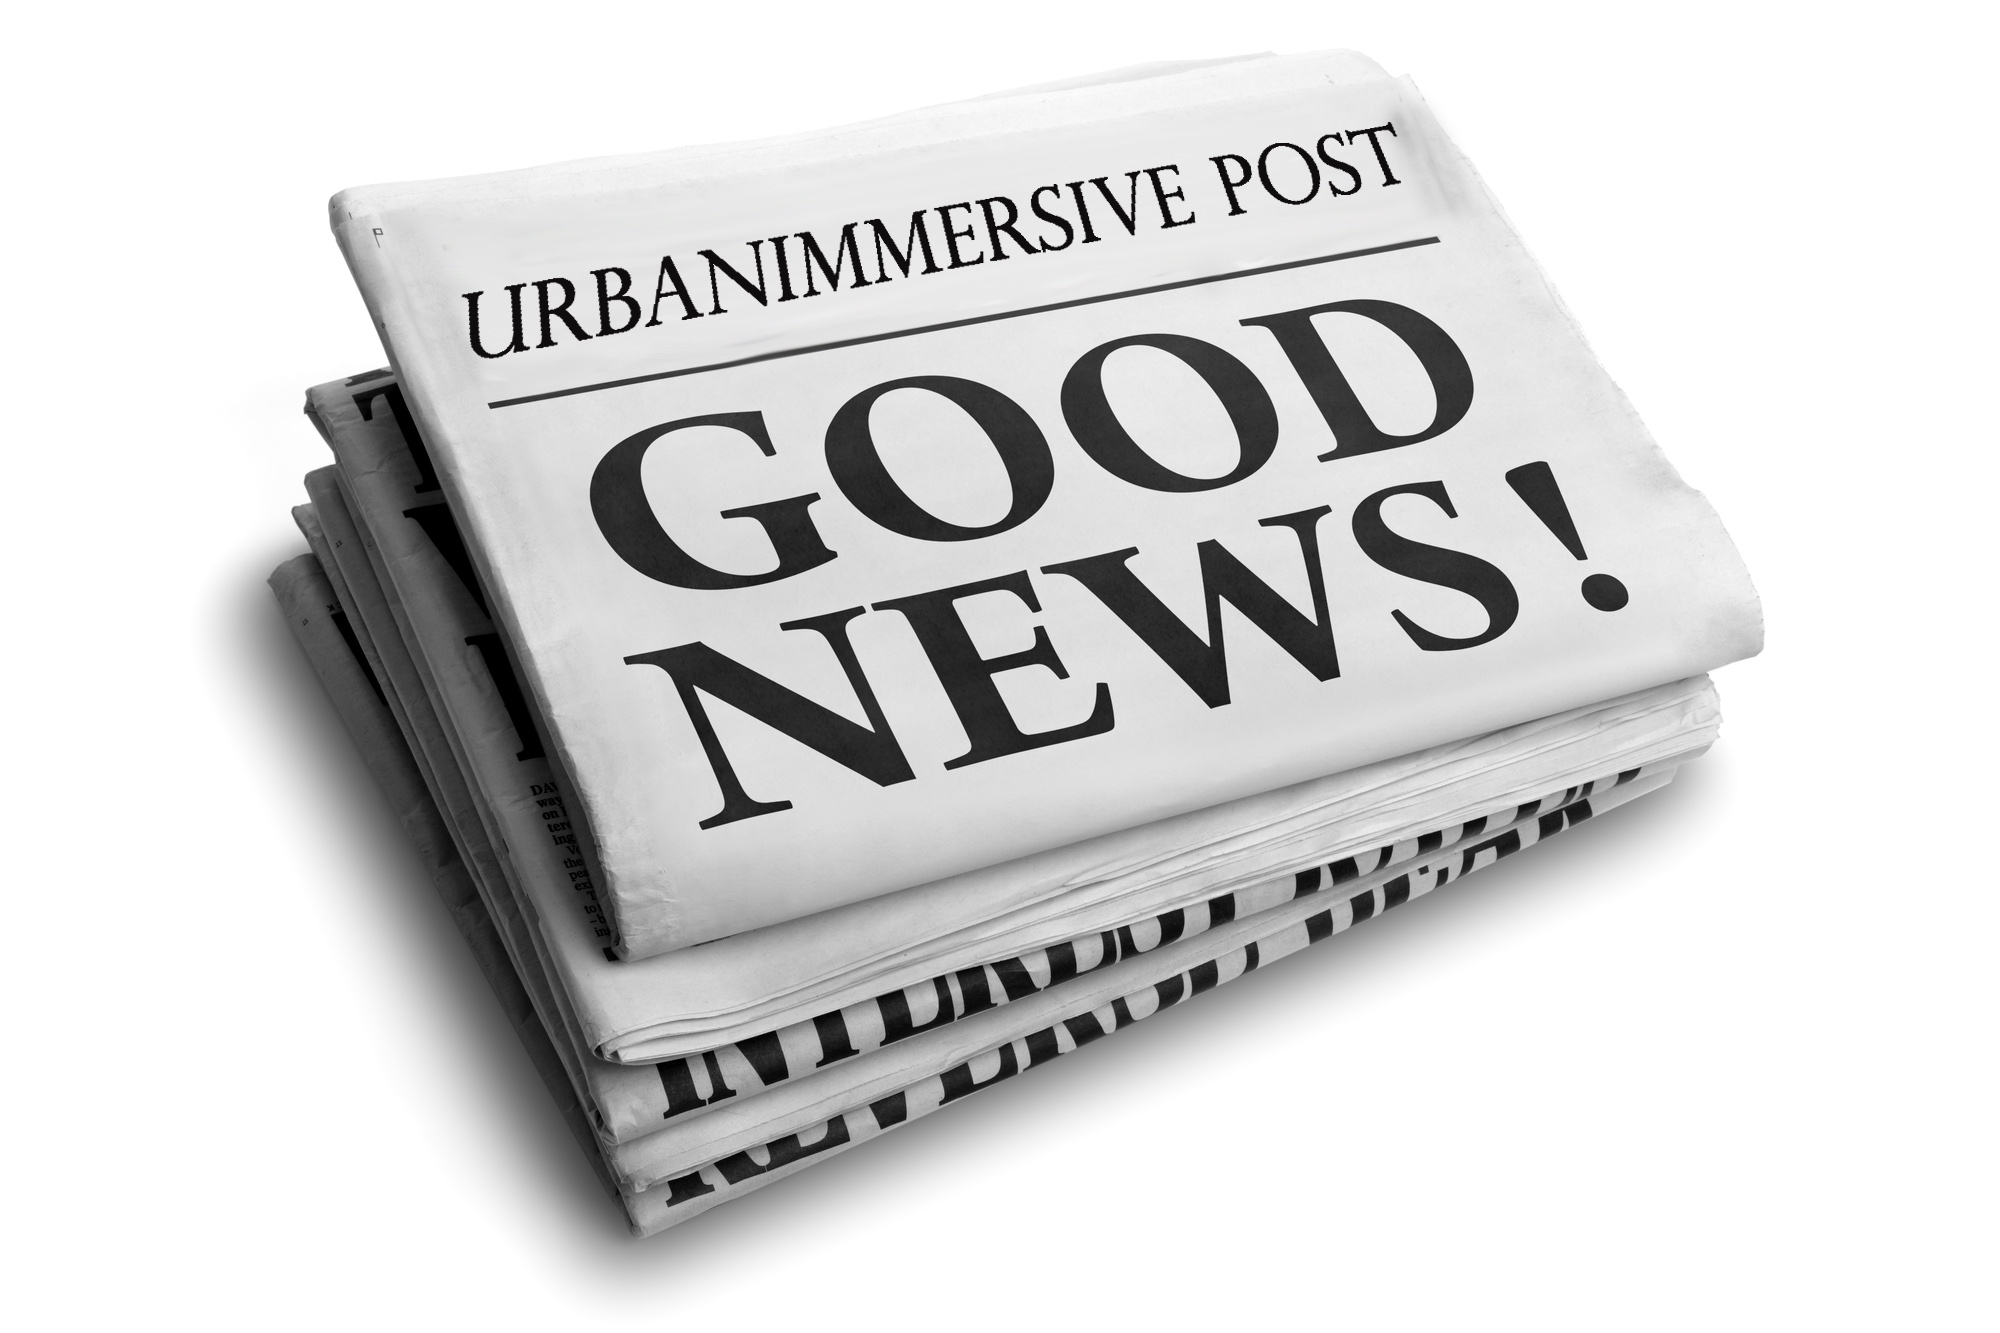 Urbanimmersive announces payment of convertible debenture interest related to the acquisition of Tourbuzz previously announced